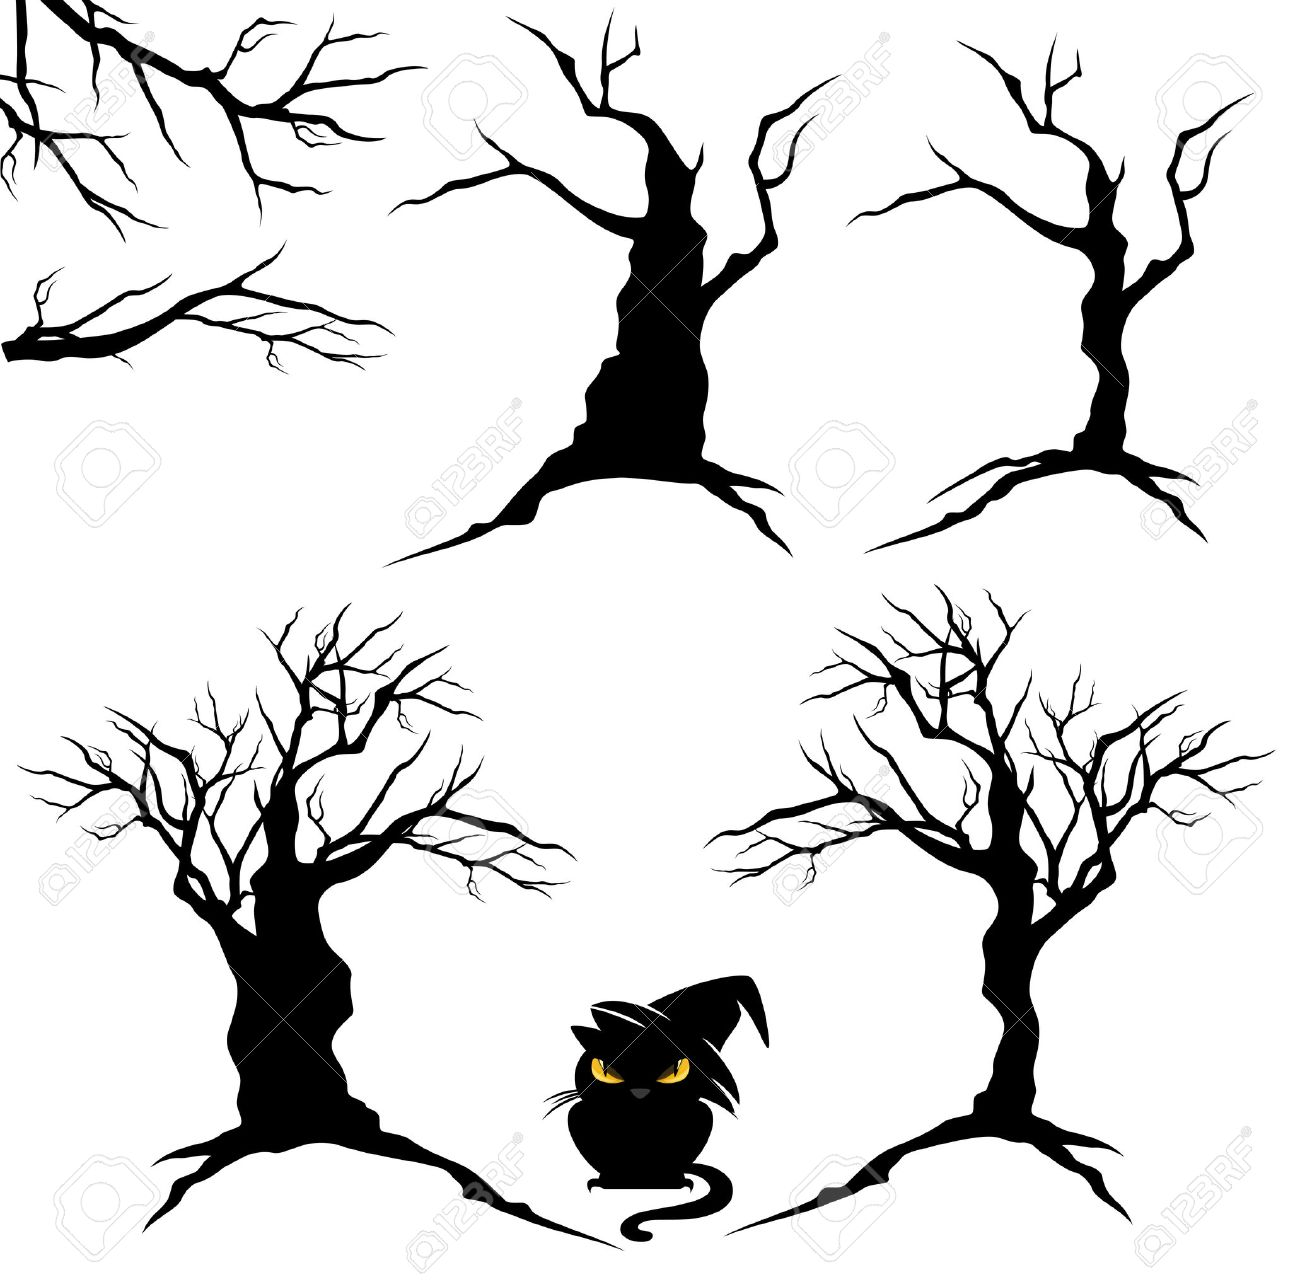 creepy trees with twisted trunks and branches - black and white halloween vector design set - 43286792